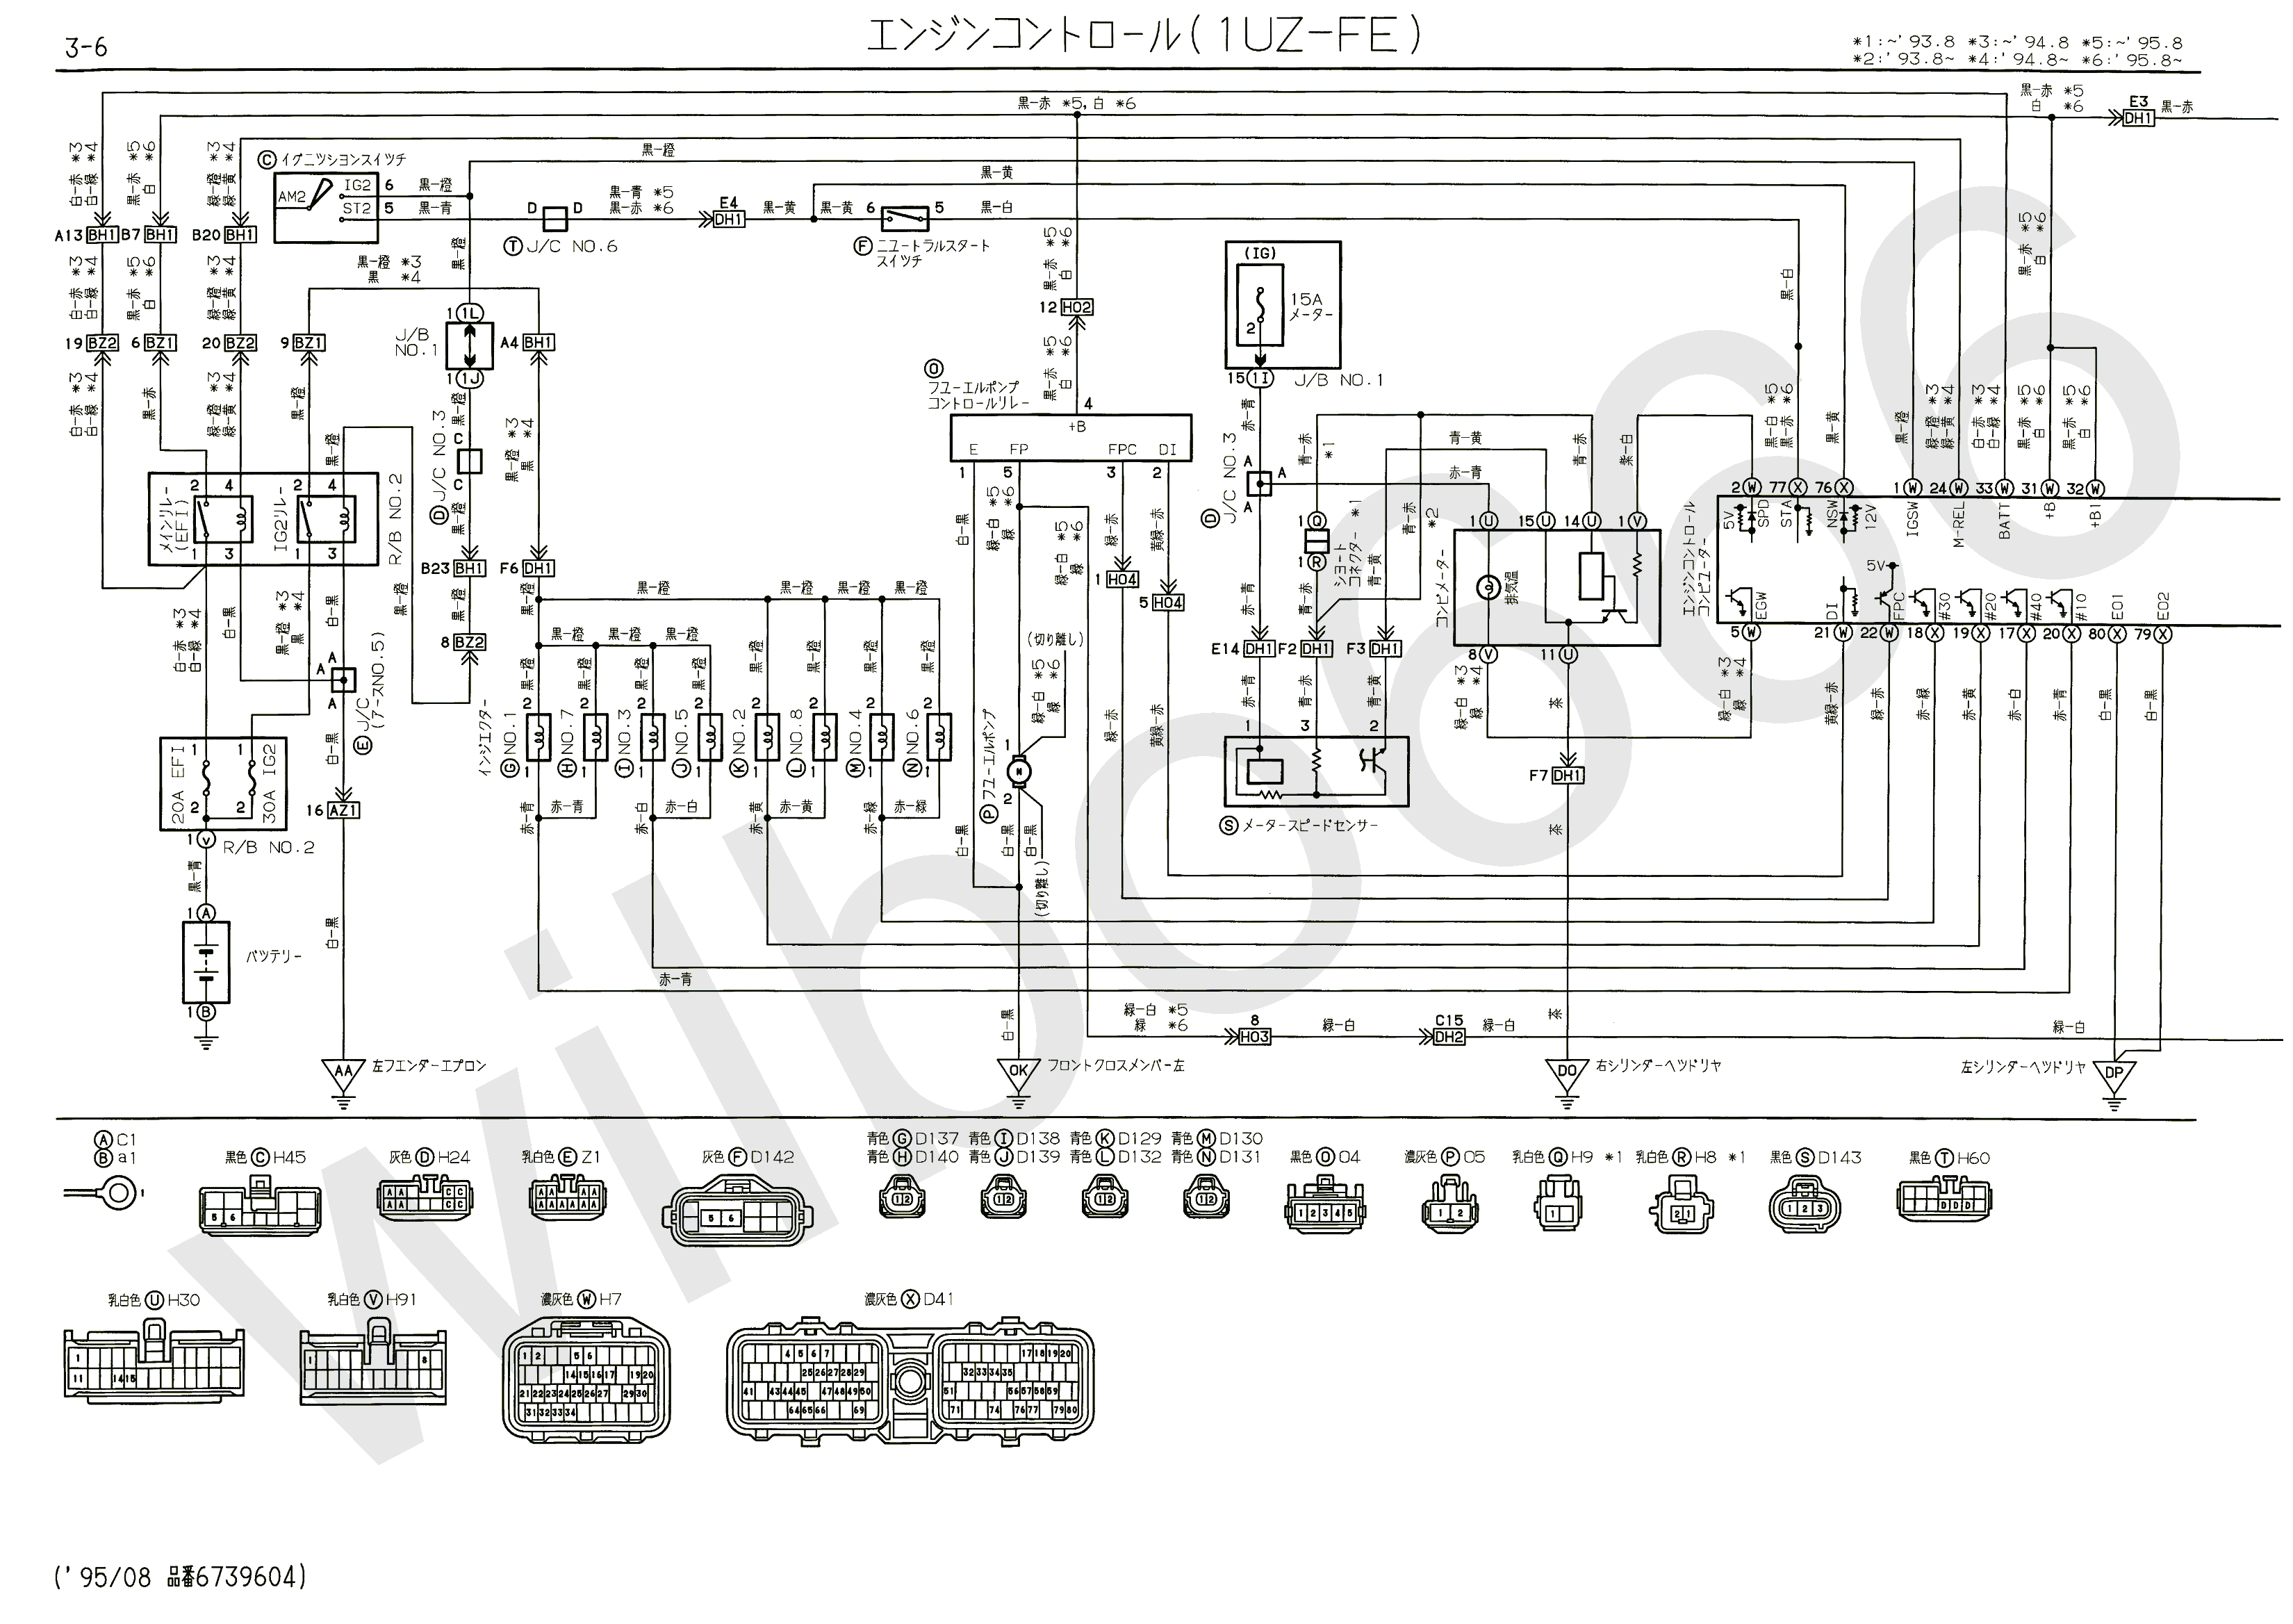 Ecu Wiring Diagram Another Blog About Wire And Technical Data In A Pdf File Of The Electrical 89661 Gm Power Steering Pump Honda Civic